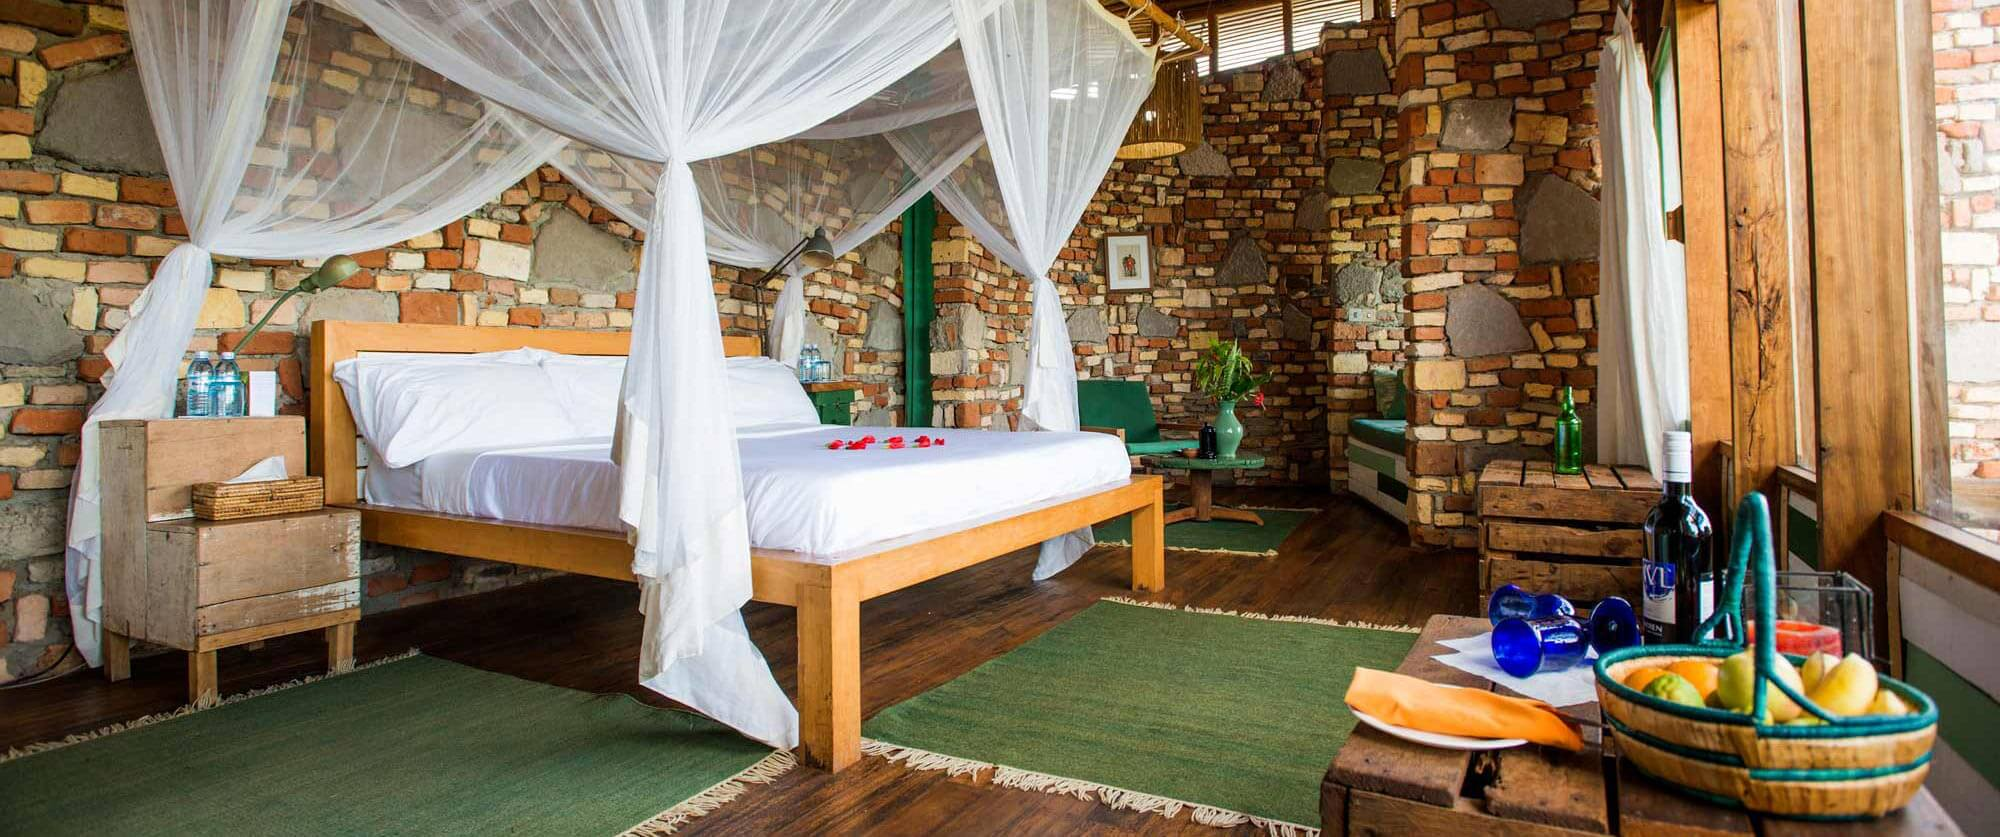 Room at Kyambura Gorge Lodge - Bwindi Impenetrable National Park - Uganda and Rwanda Gorilla Trekking Tour